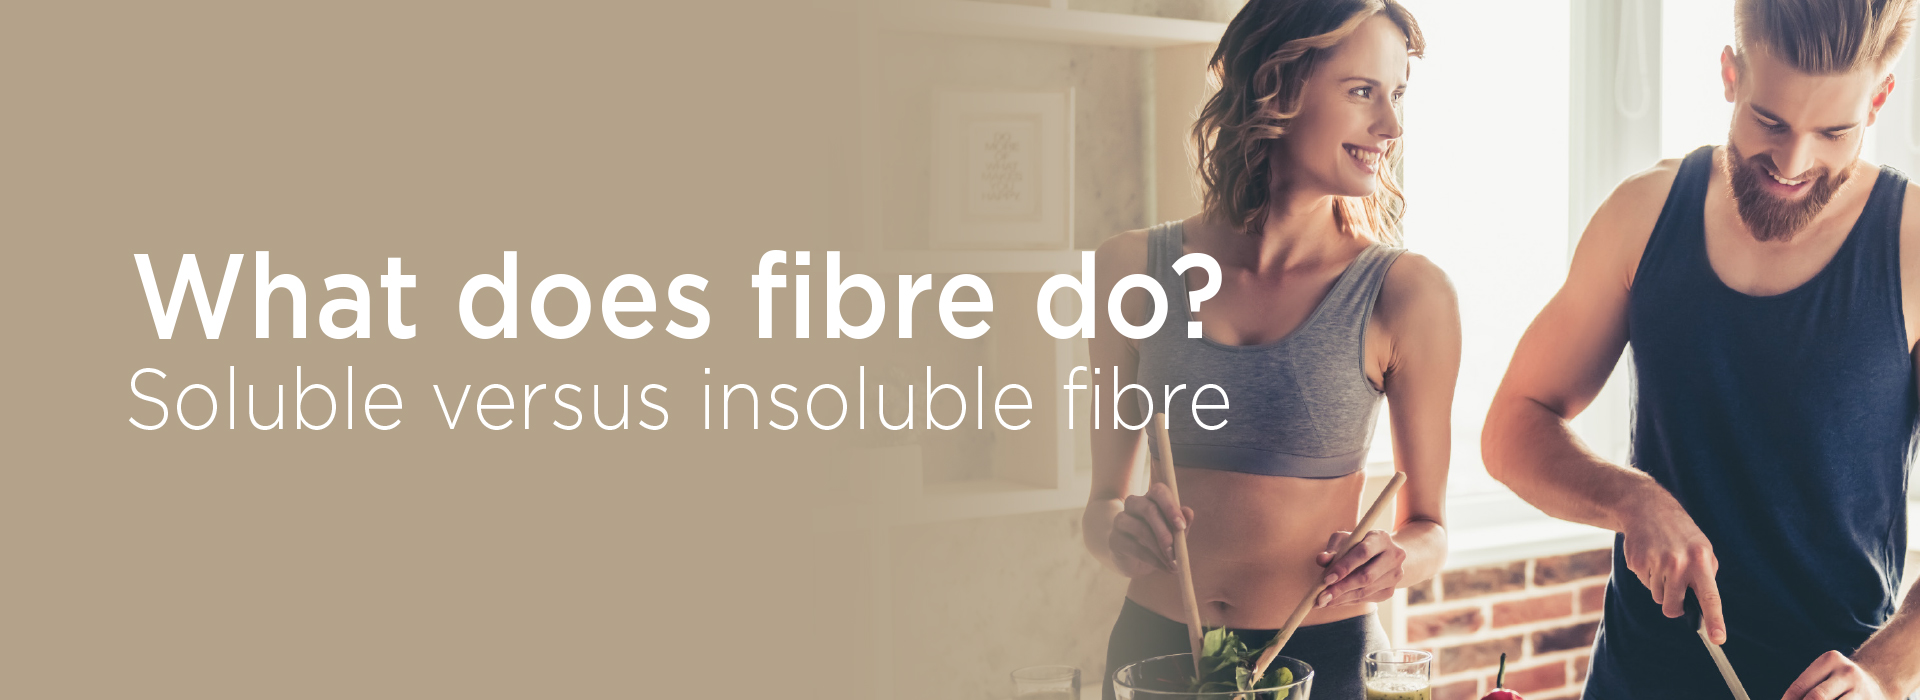 New Image International: Fibre - What does it do?